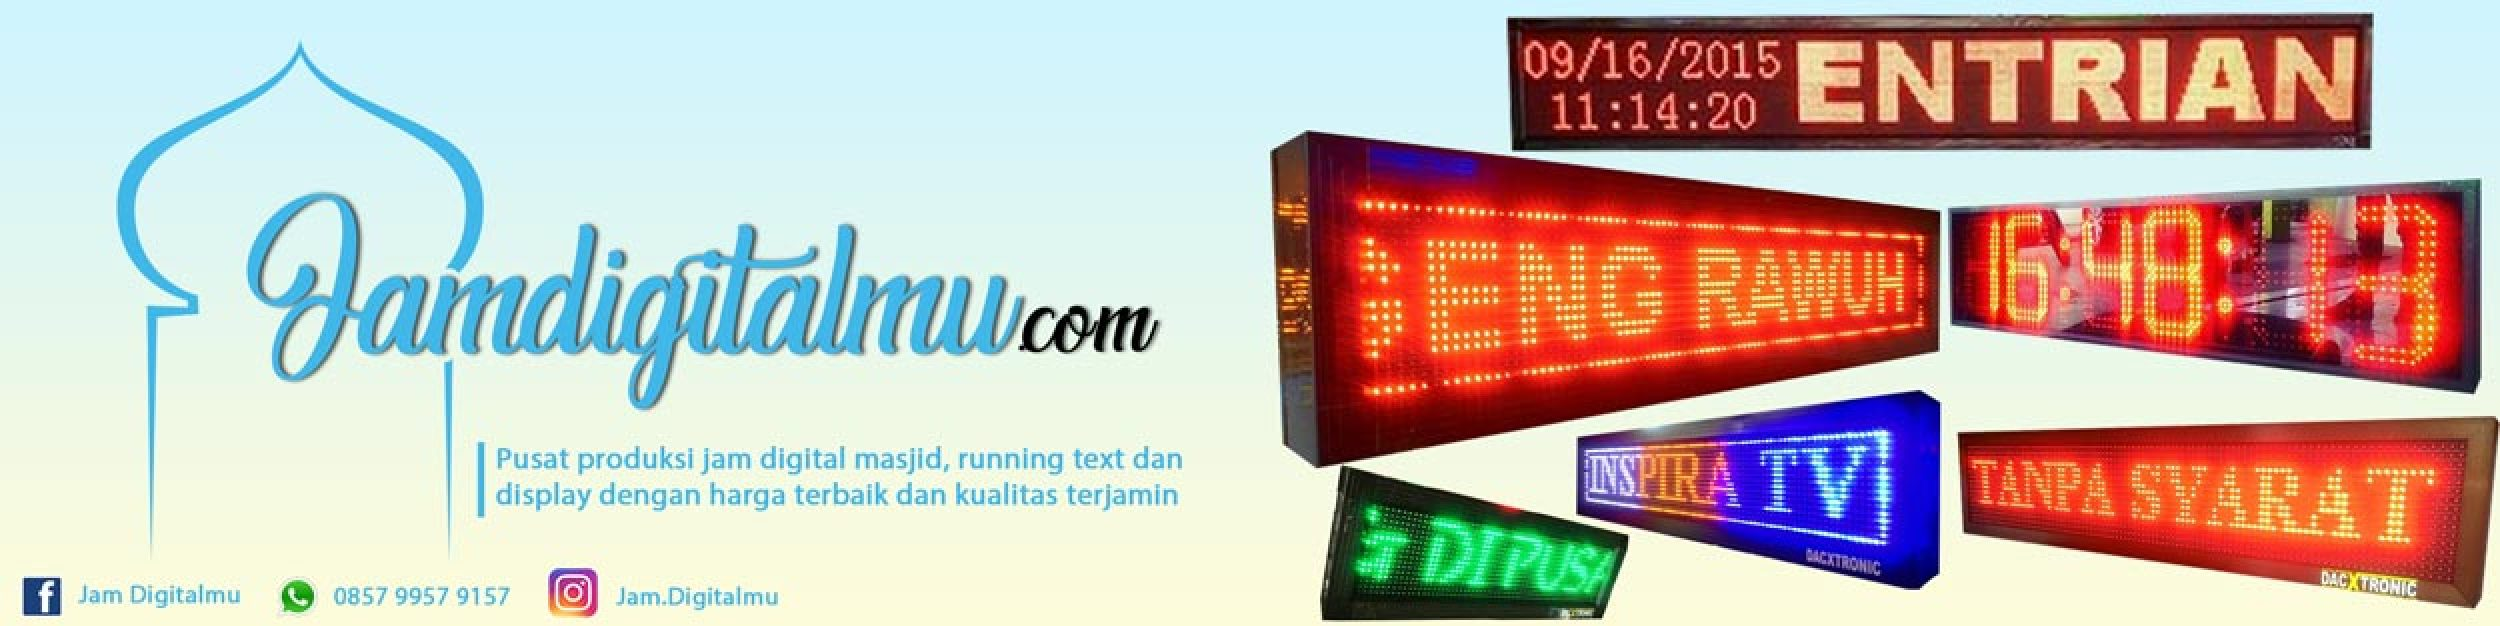 Jam Digital Iqomah Led3 Daftar Harga Terendah Indonesia Led Runningtext 68x20 Masjid Running Text Mesjid Red Color Murah